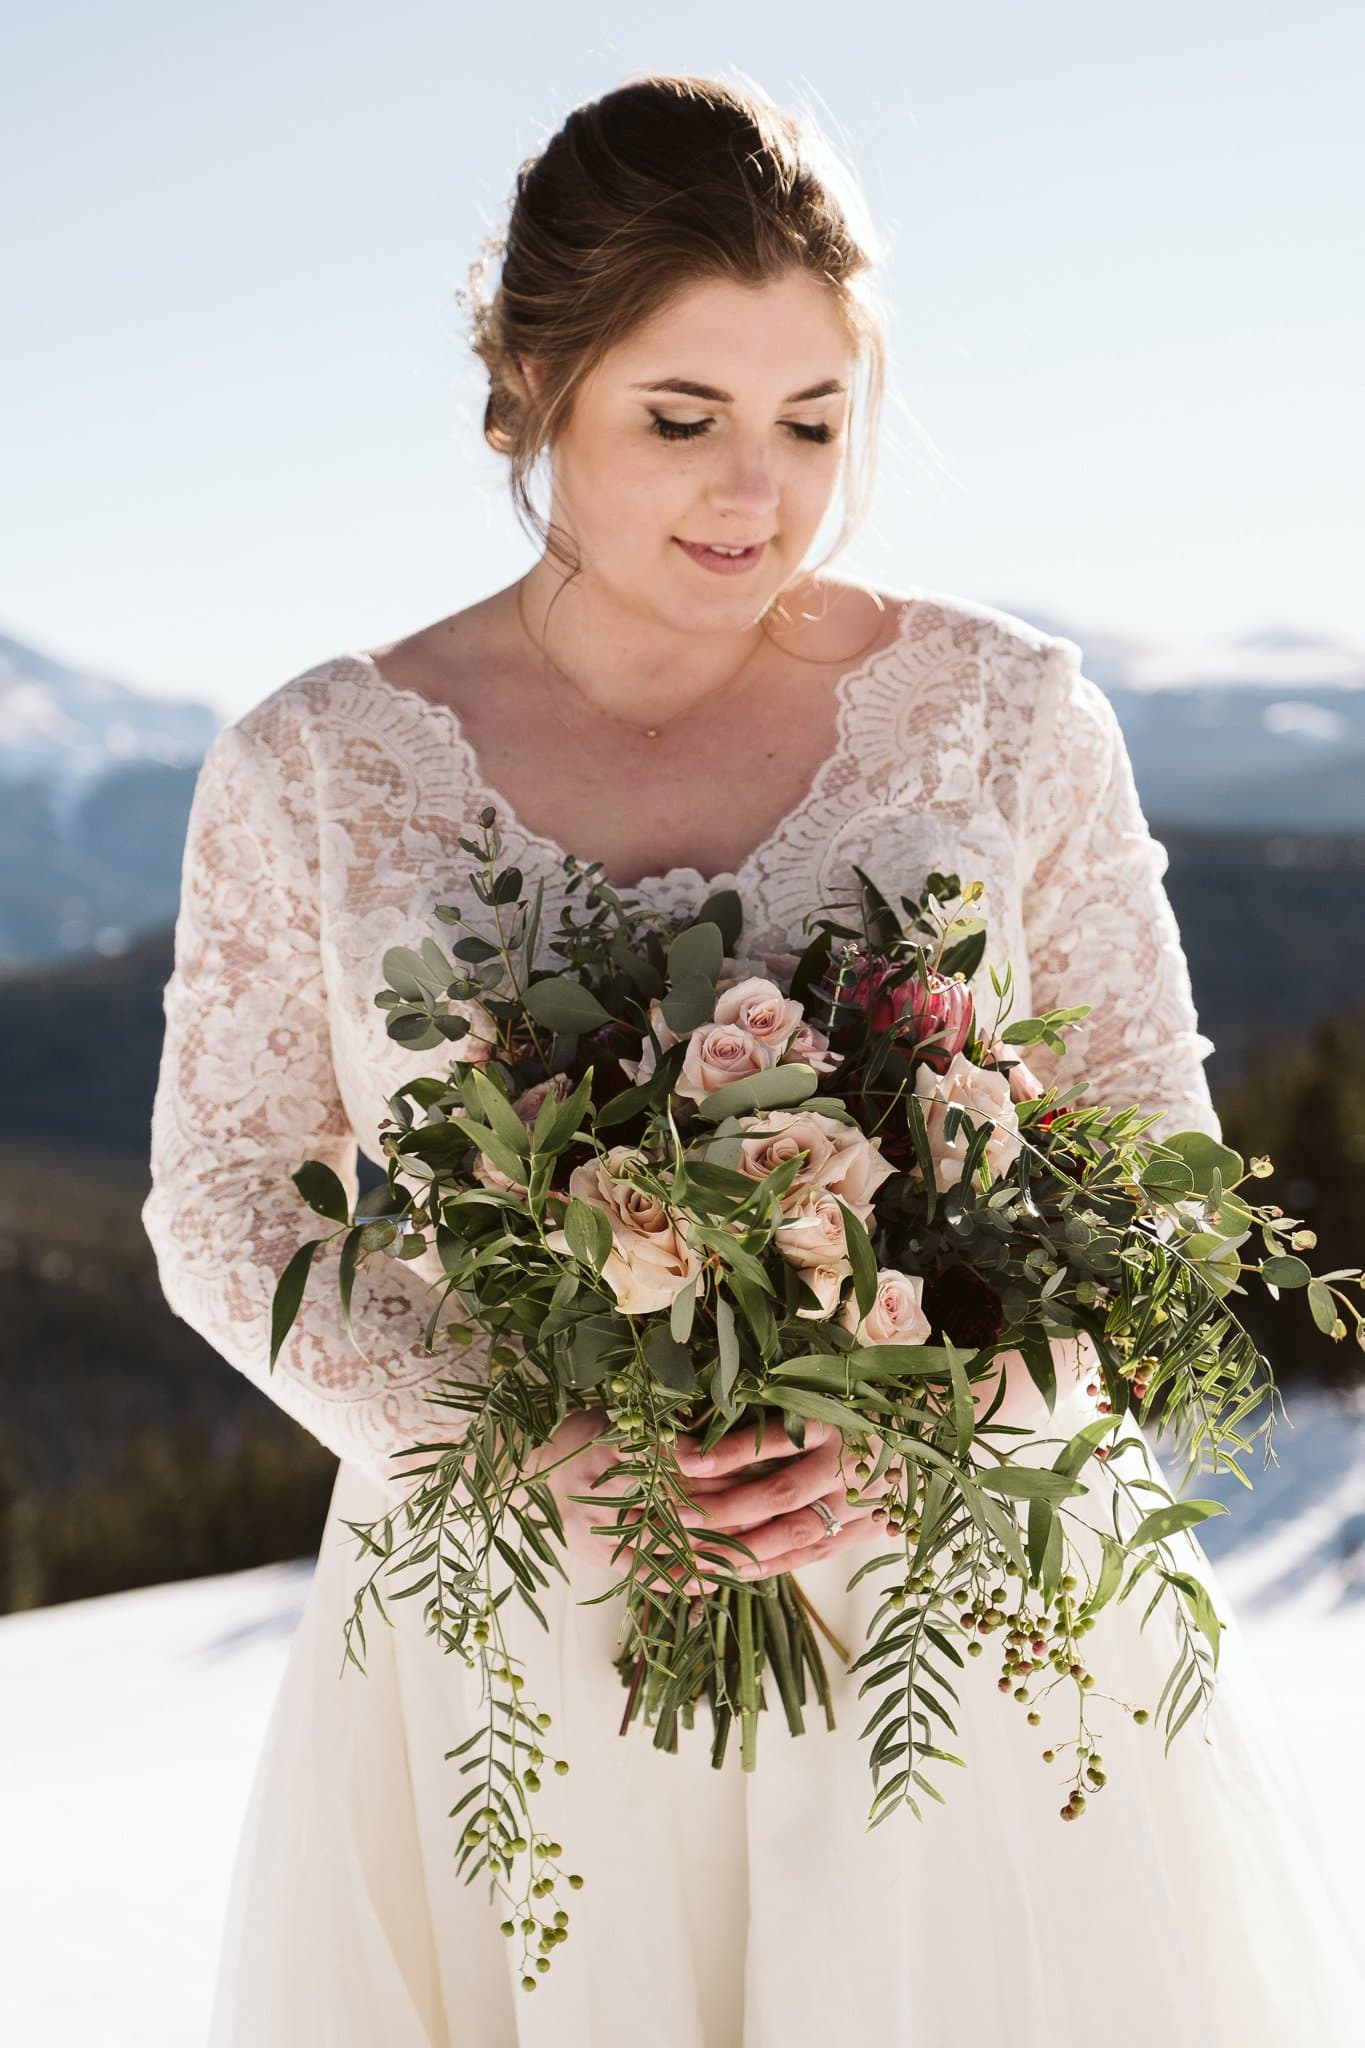 Bride with long sleeve lace wedding dress at winter wedding, holding modern green bouquet with pink and purple flowers.